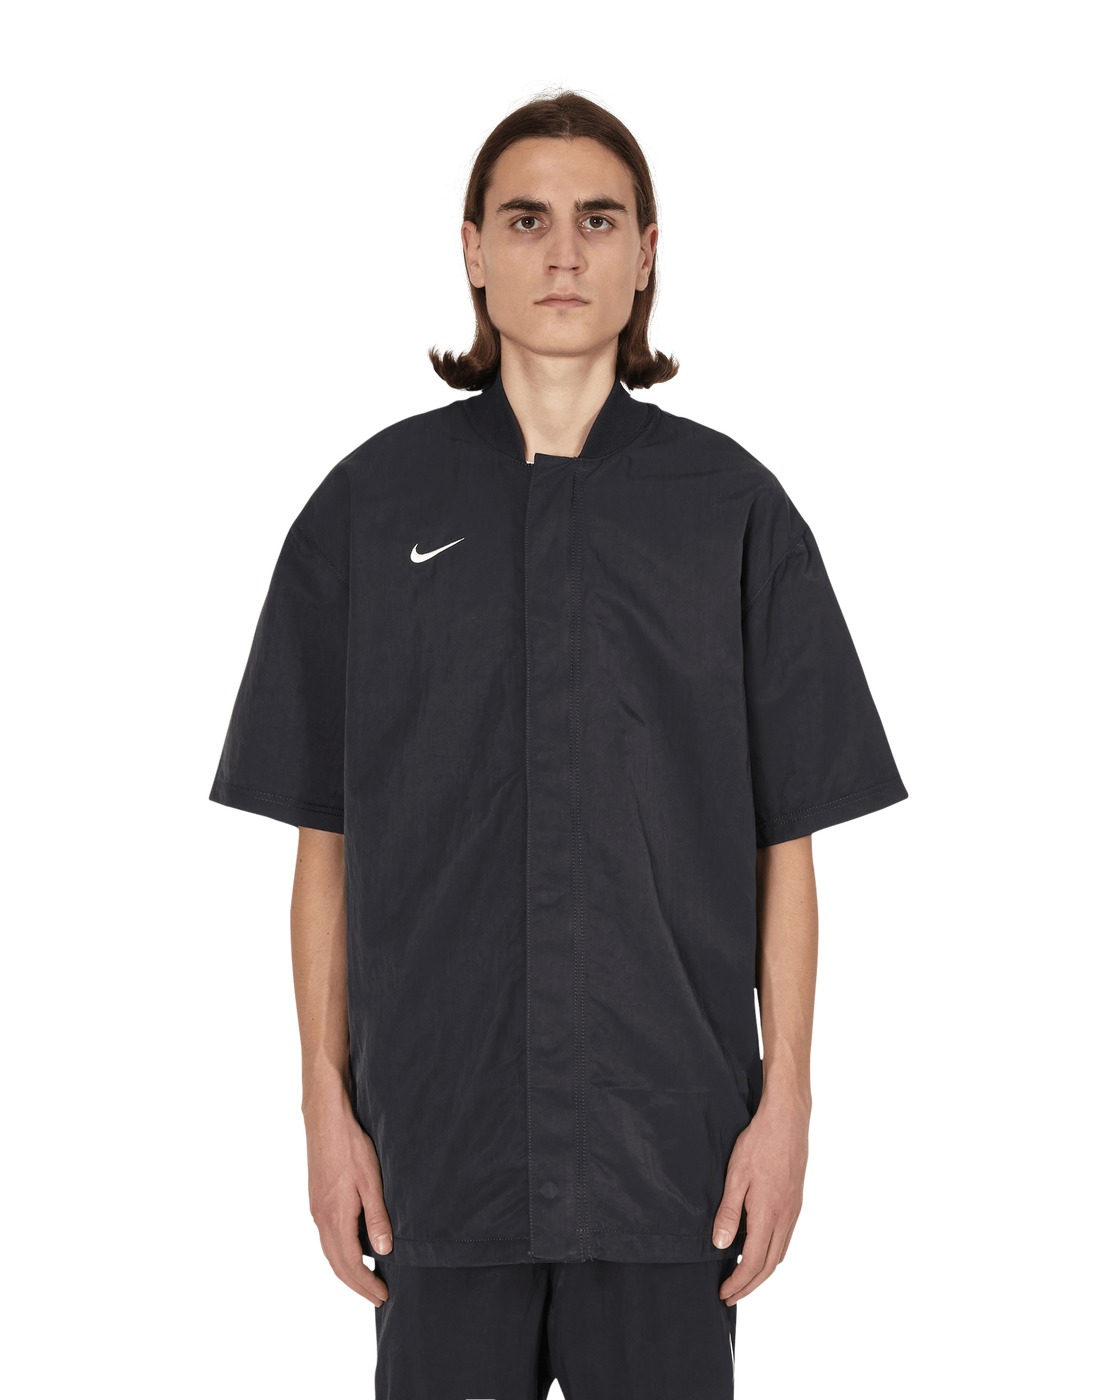 Nike Special Project Jerry Lorenzo Warm Up Top Off Noir